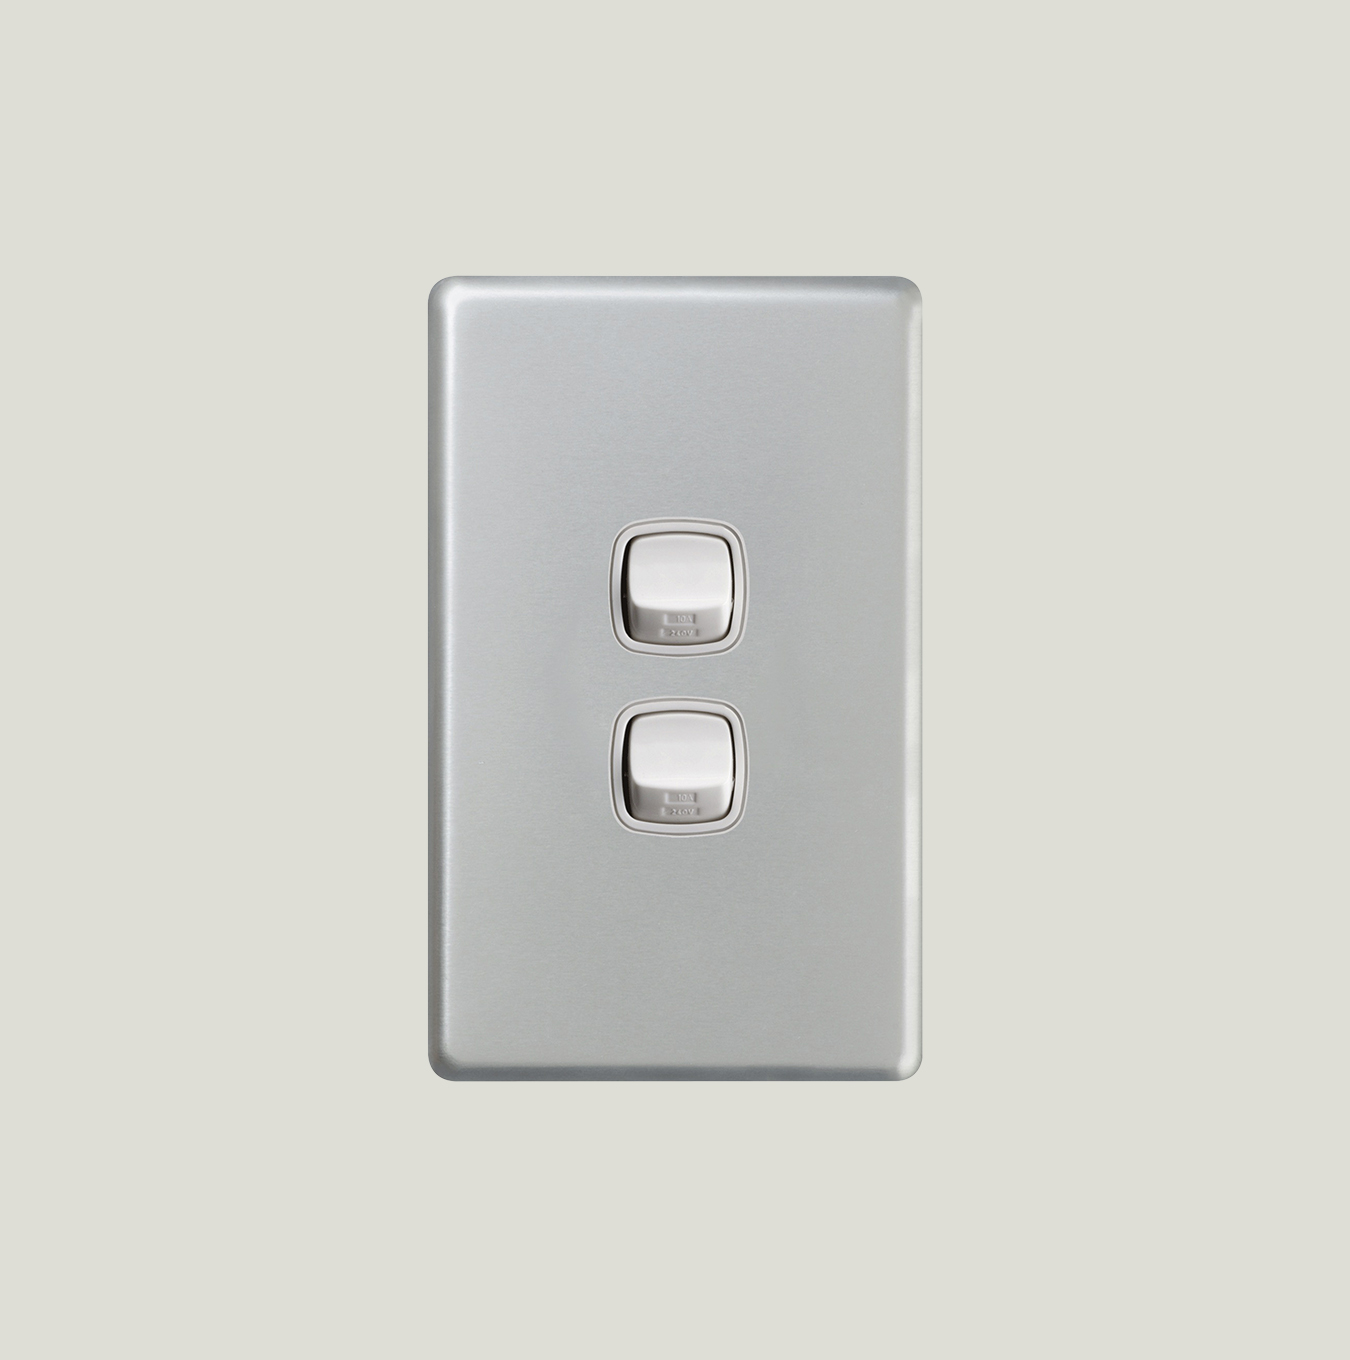 Switch 2 Gang Au Site Hpm Two Way Light Matt Silver Finish